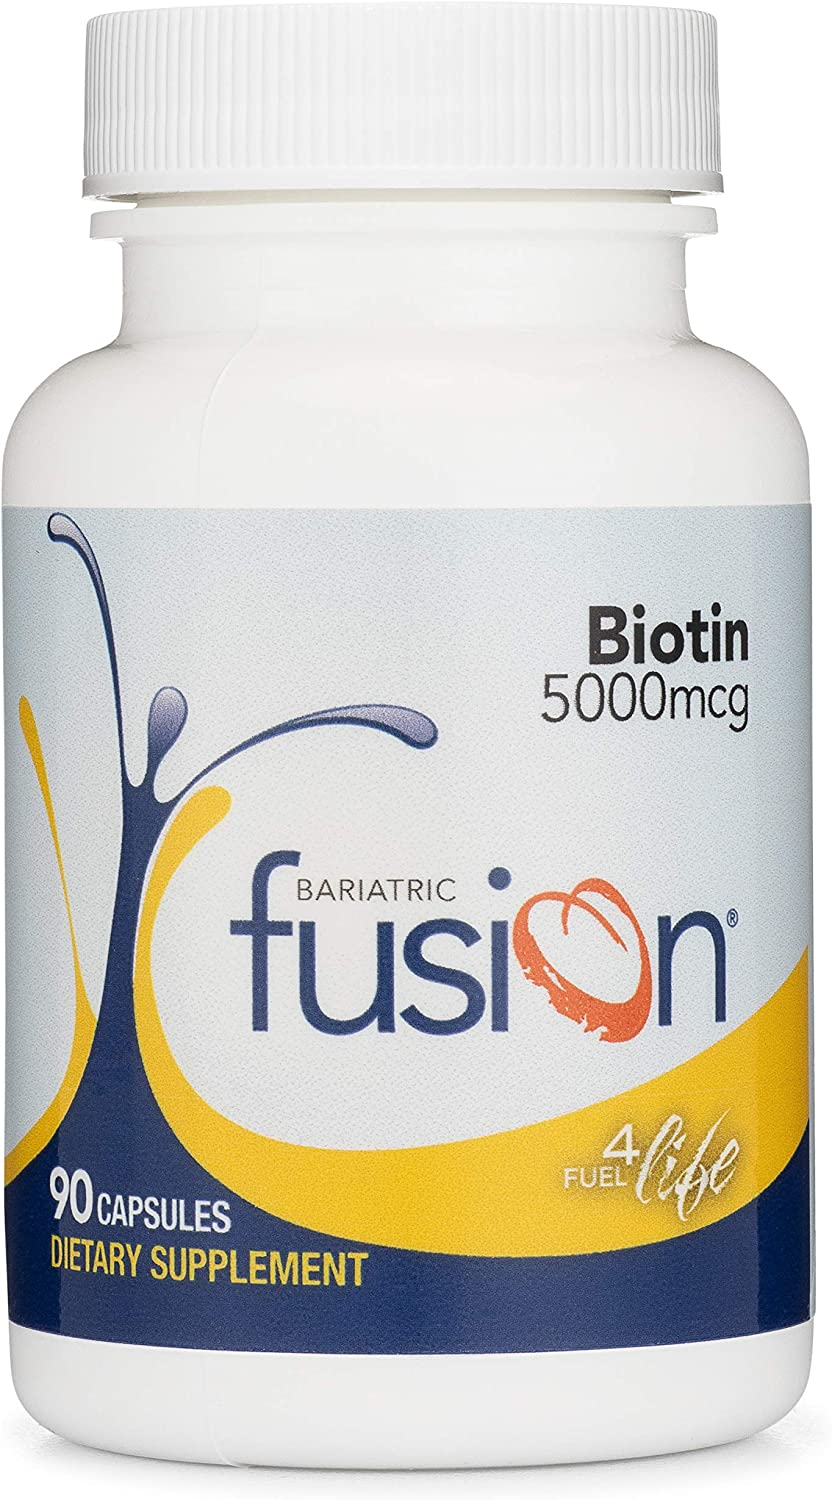 Bariatric Max 71% OFF Clearance SALE Limited time Fusion Biotin 5000mcg for Patients Surgery